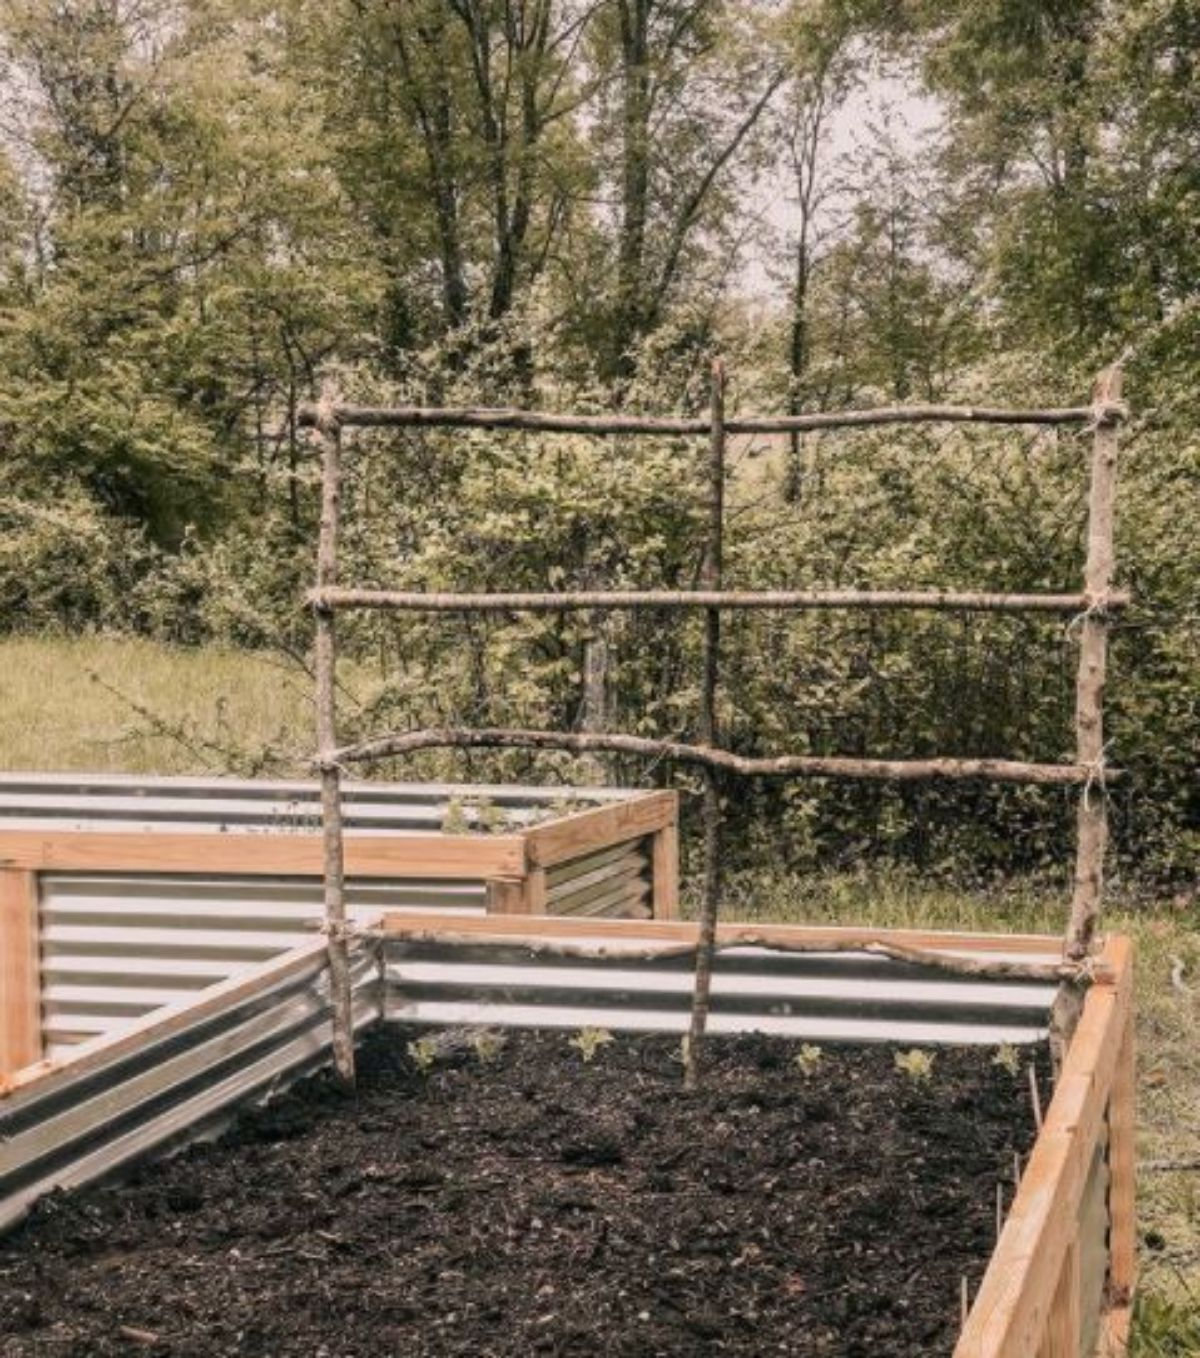 raised bed with twig trellis in the garden preparing for planting